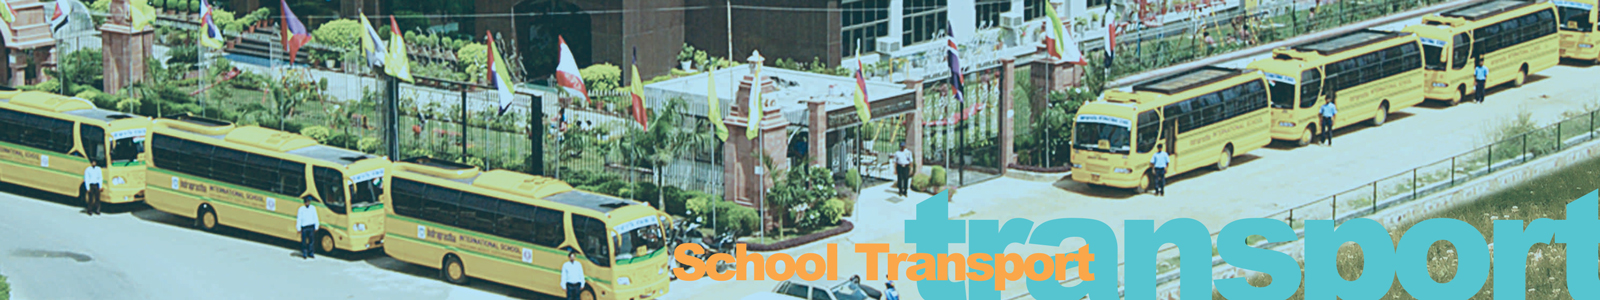 School Transport, Indraprastha International School